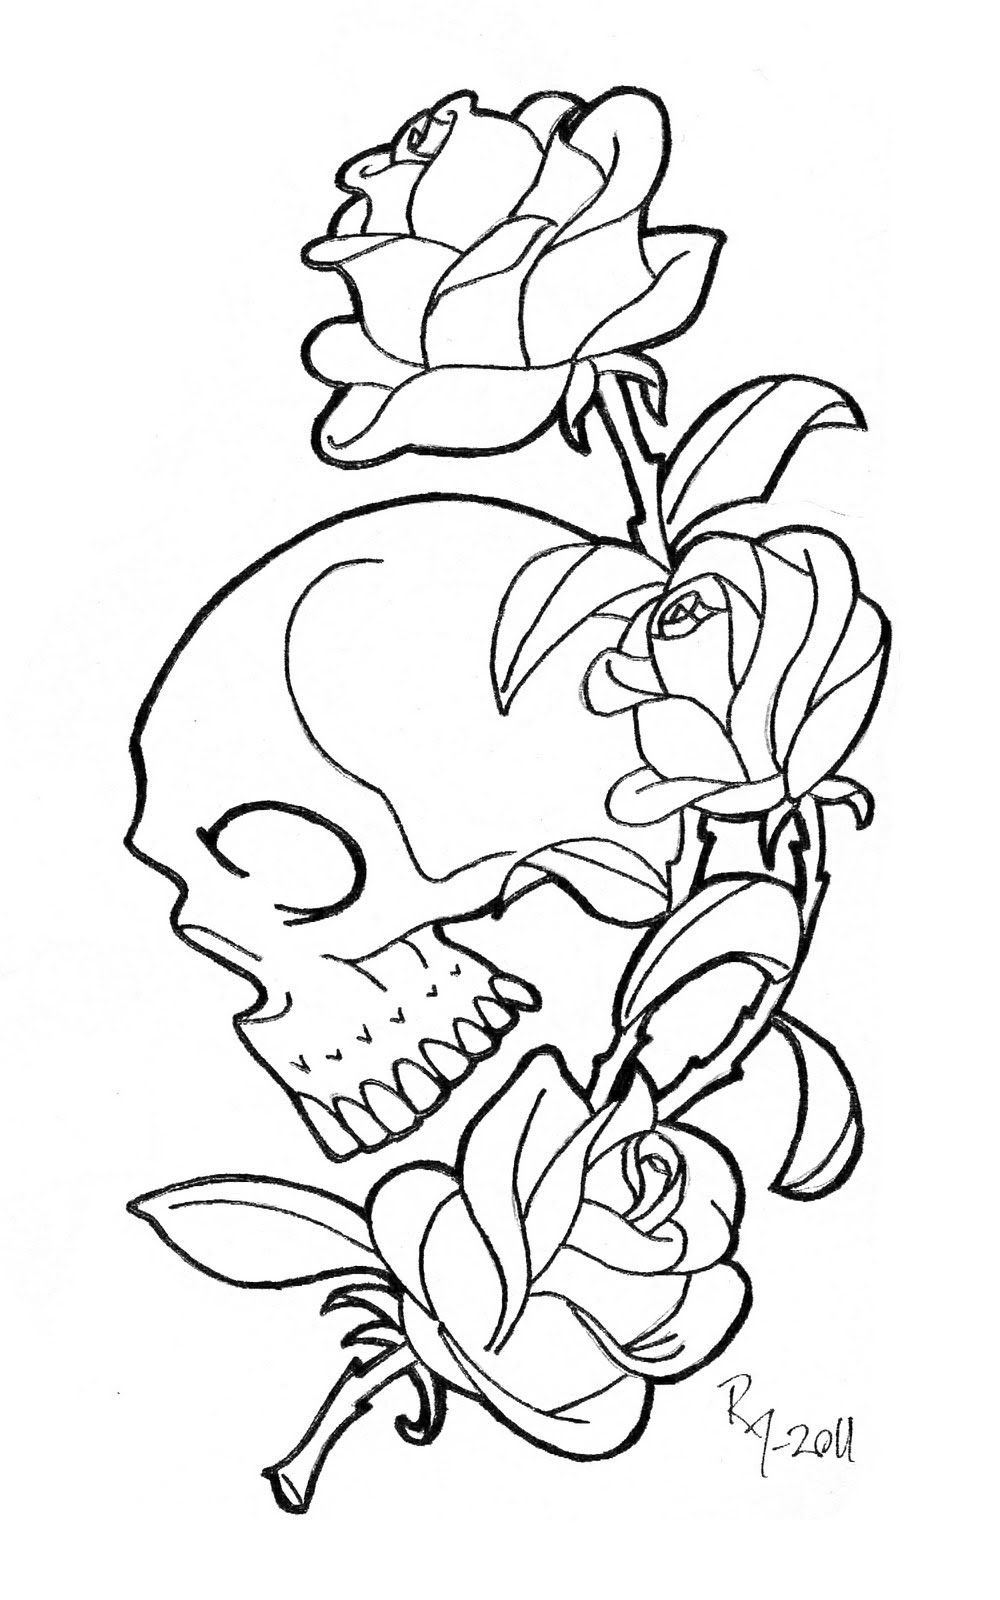 Skull With Roses Coloring Pages Rose Coloring Pages Skull Coloring Pages Tattoo Coloring Book